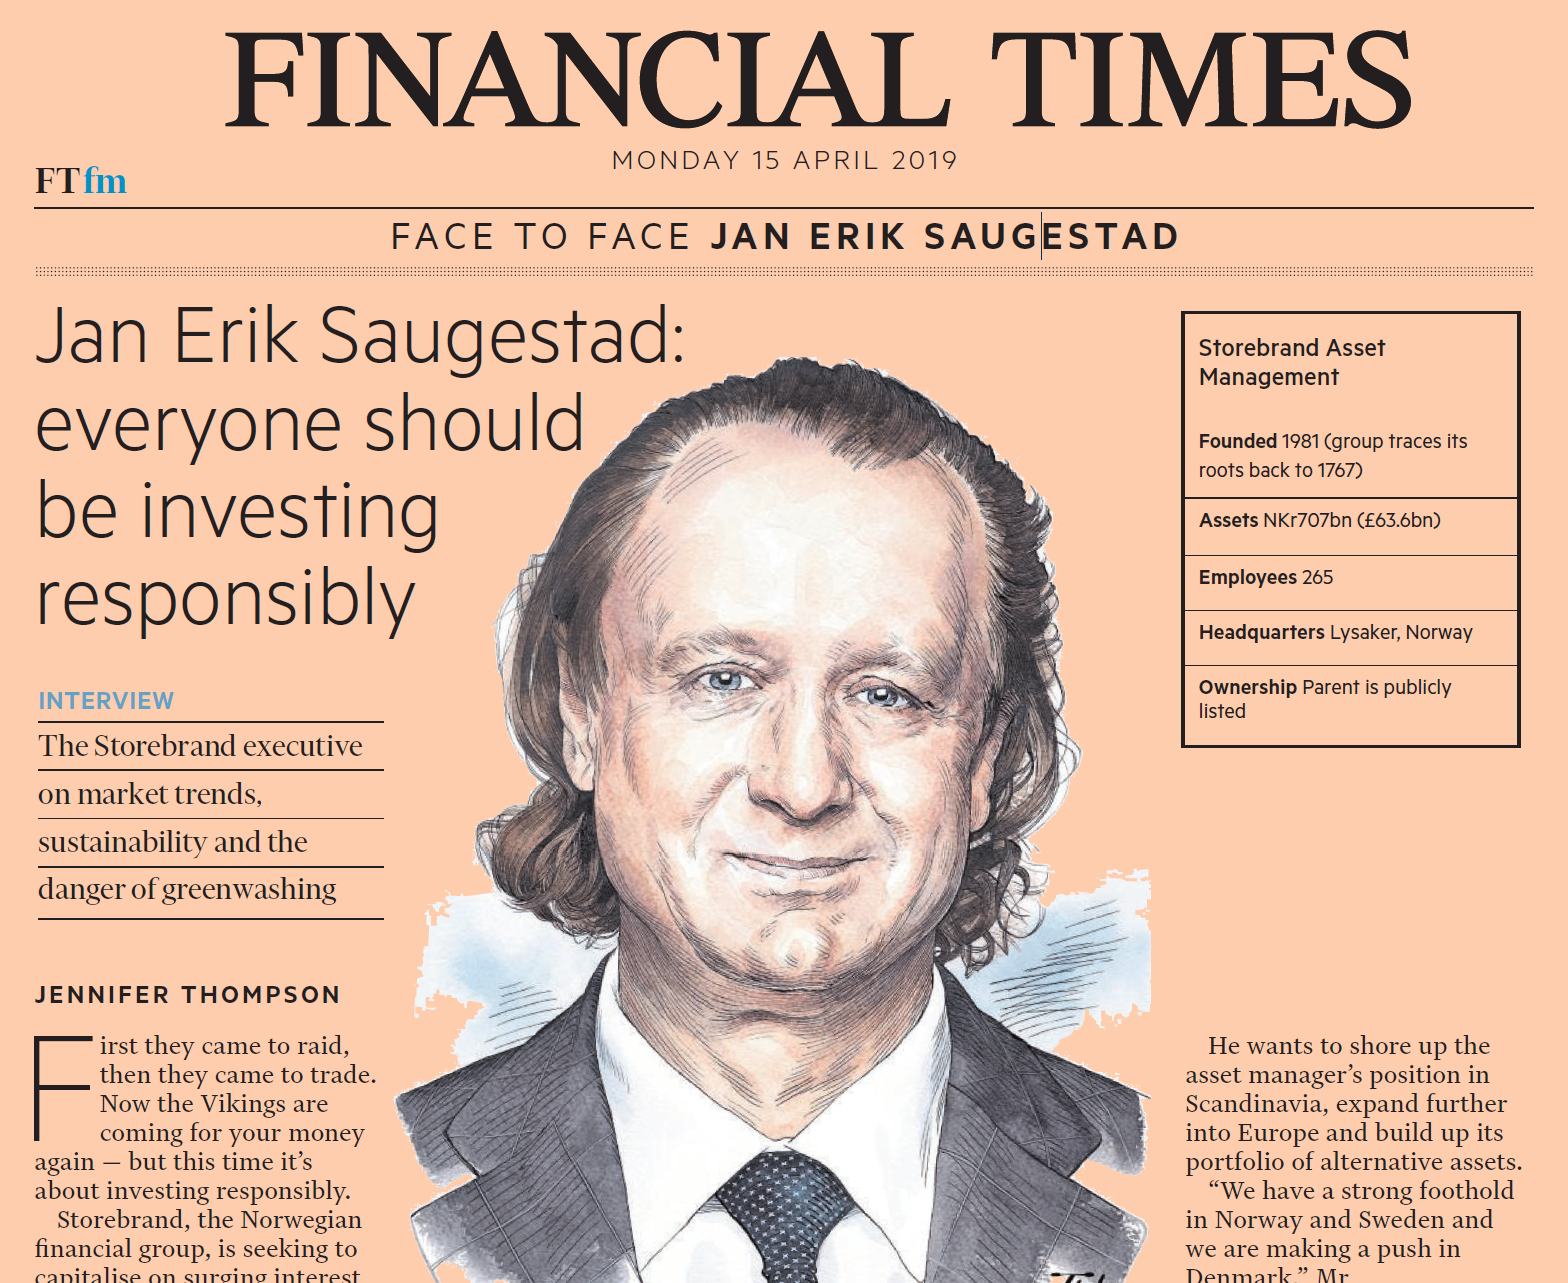 FinancialTimes_JES_Snagit